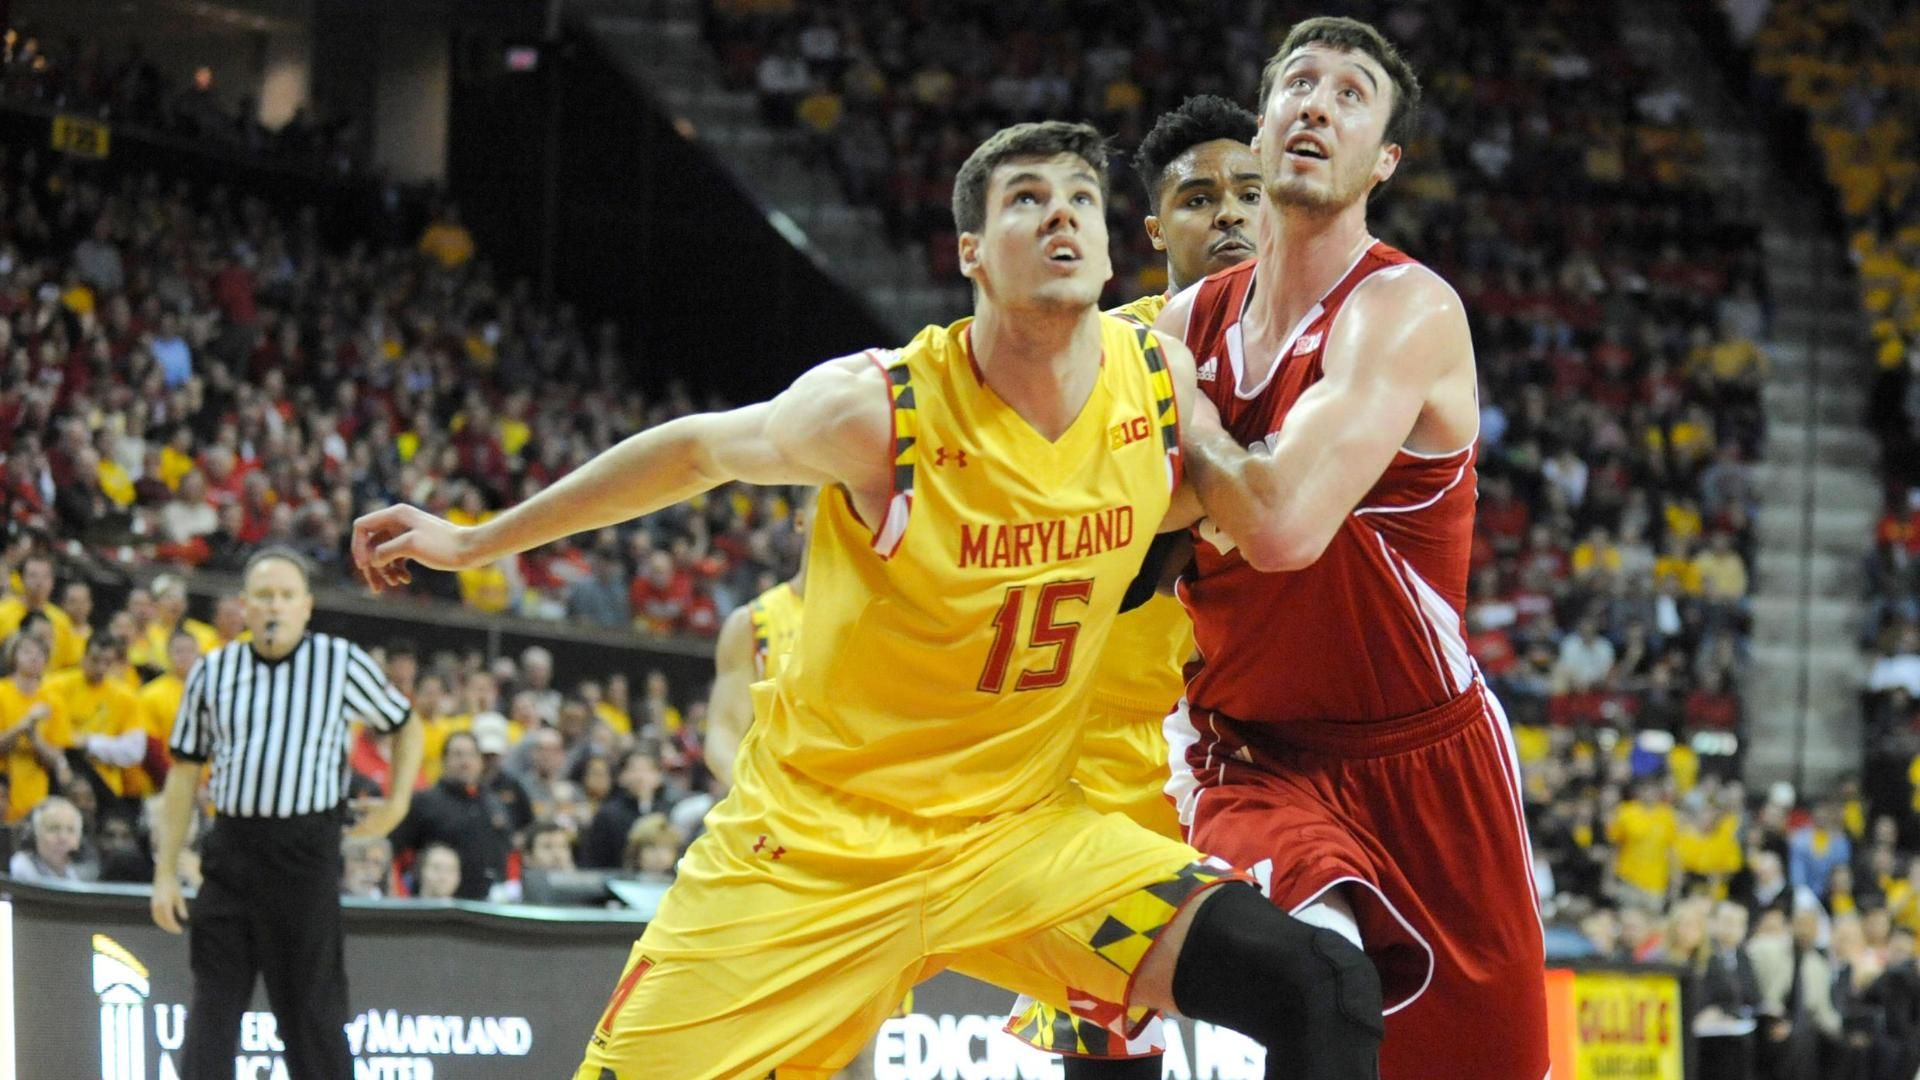 Wells Plays Spectacularly In Win Over Wisconsin